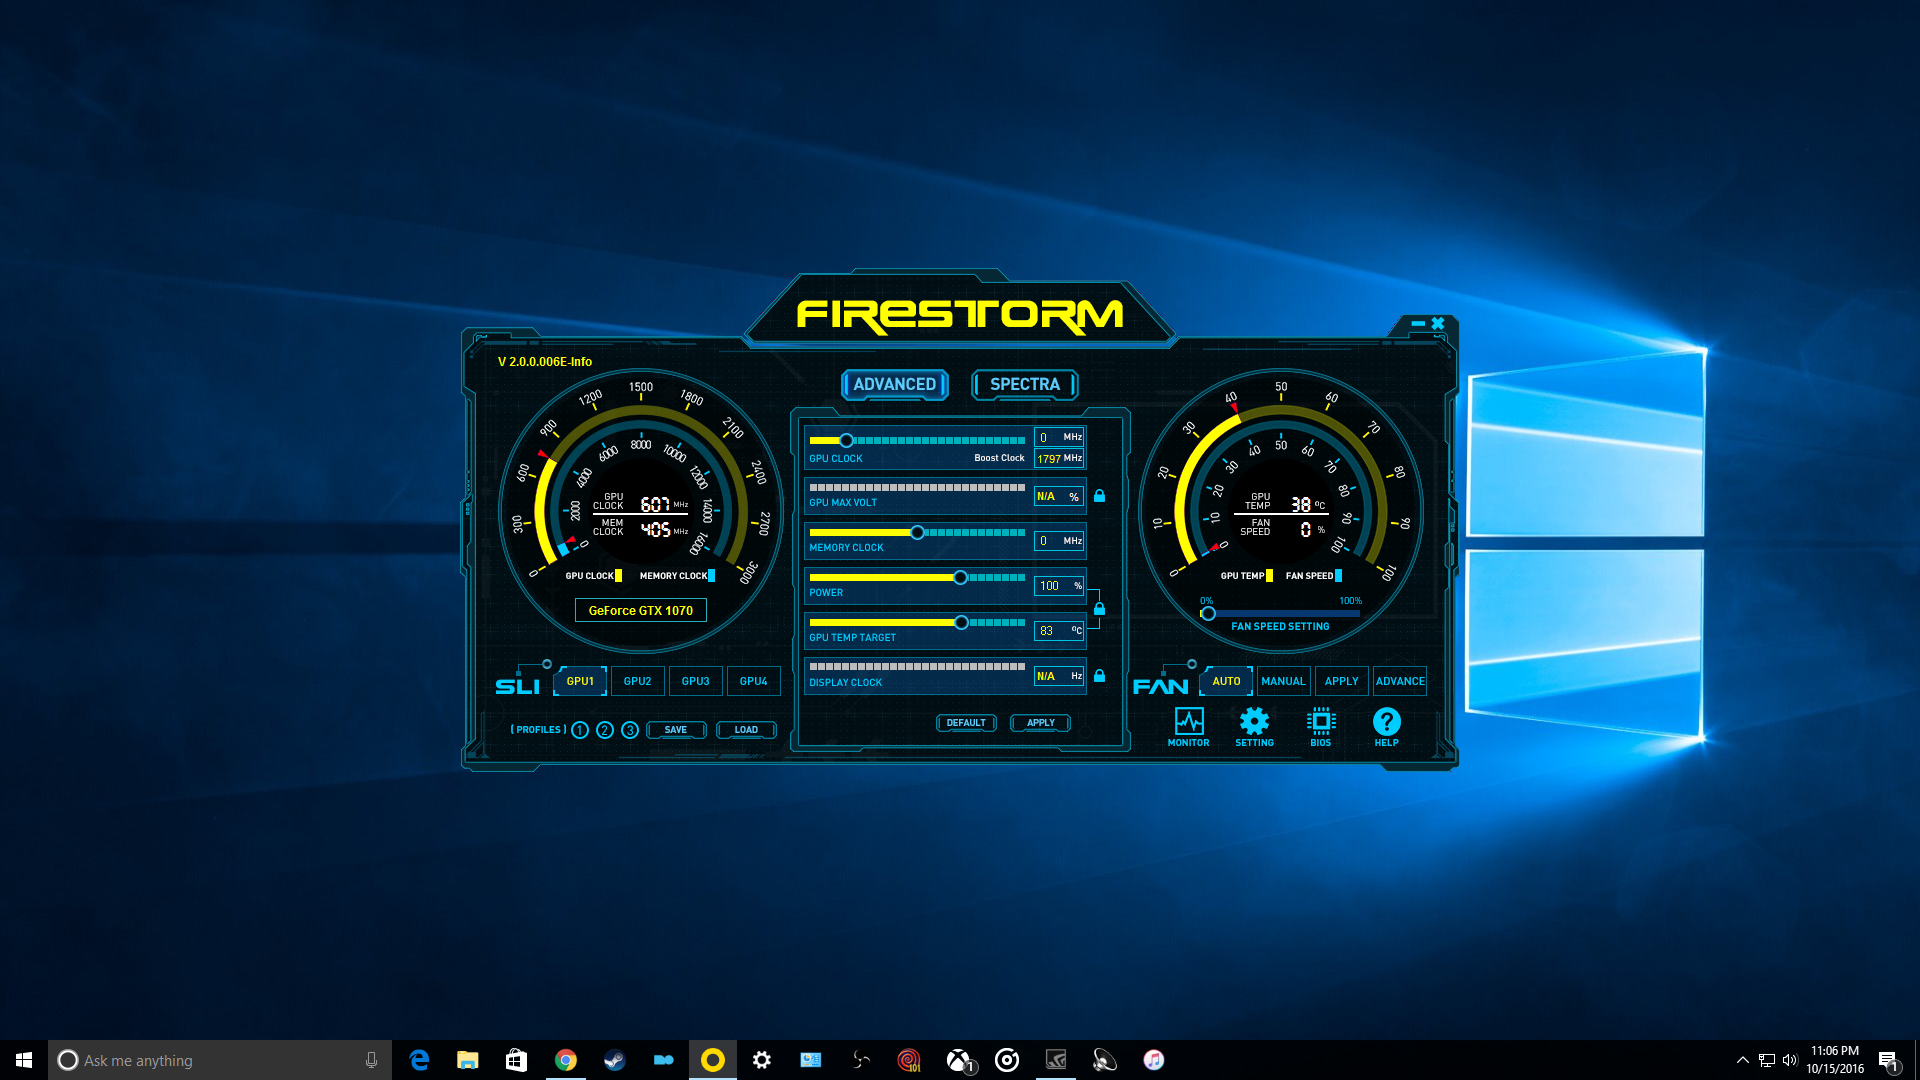 How to overclock with Zotac 1070? - Graphics Cards - Linus